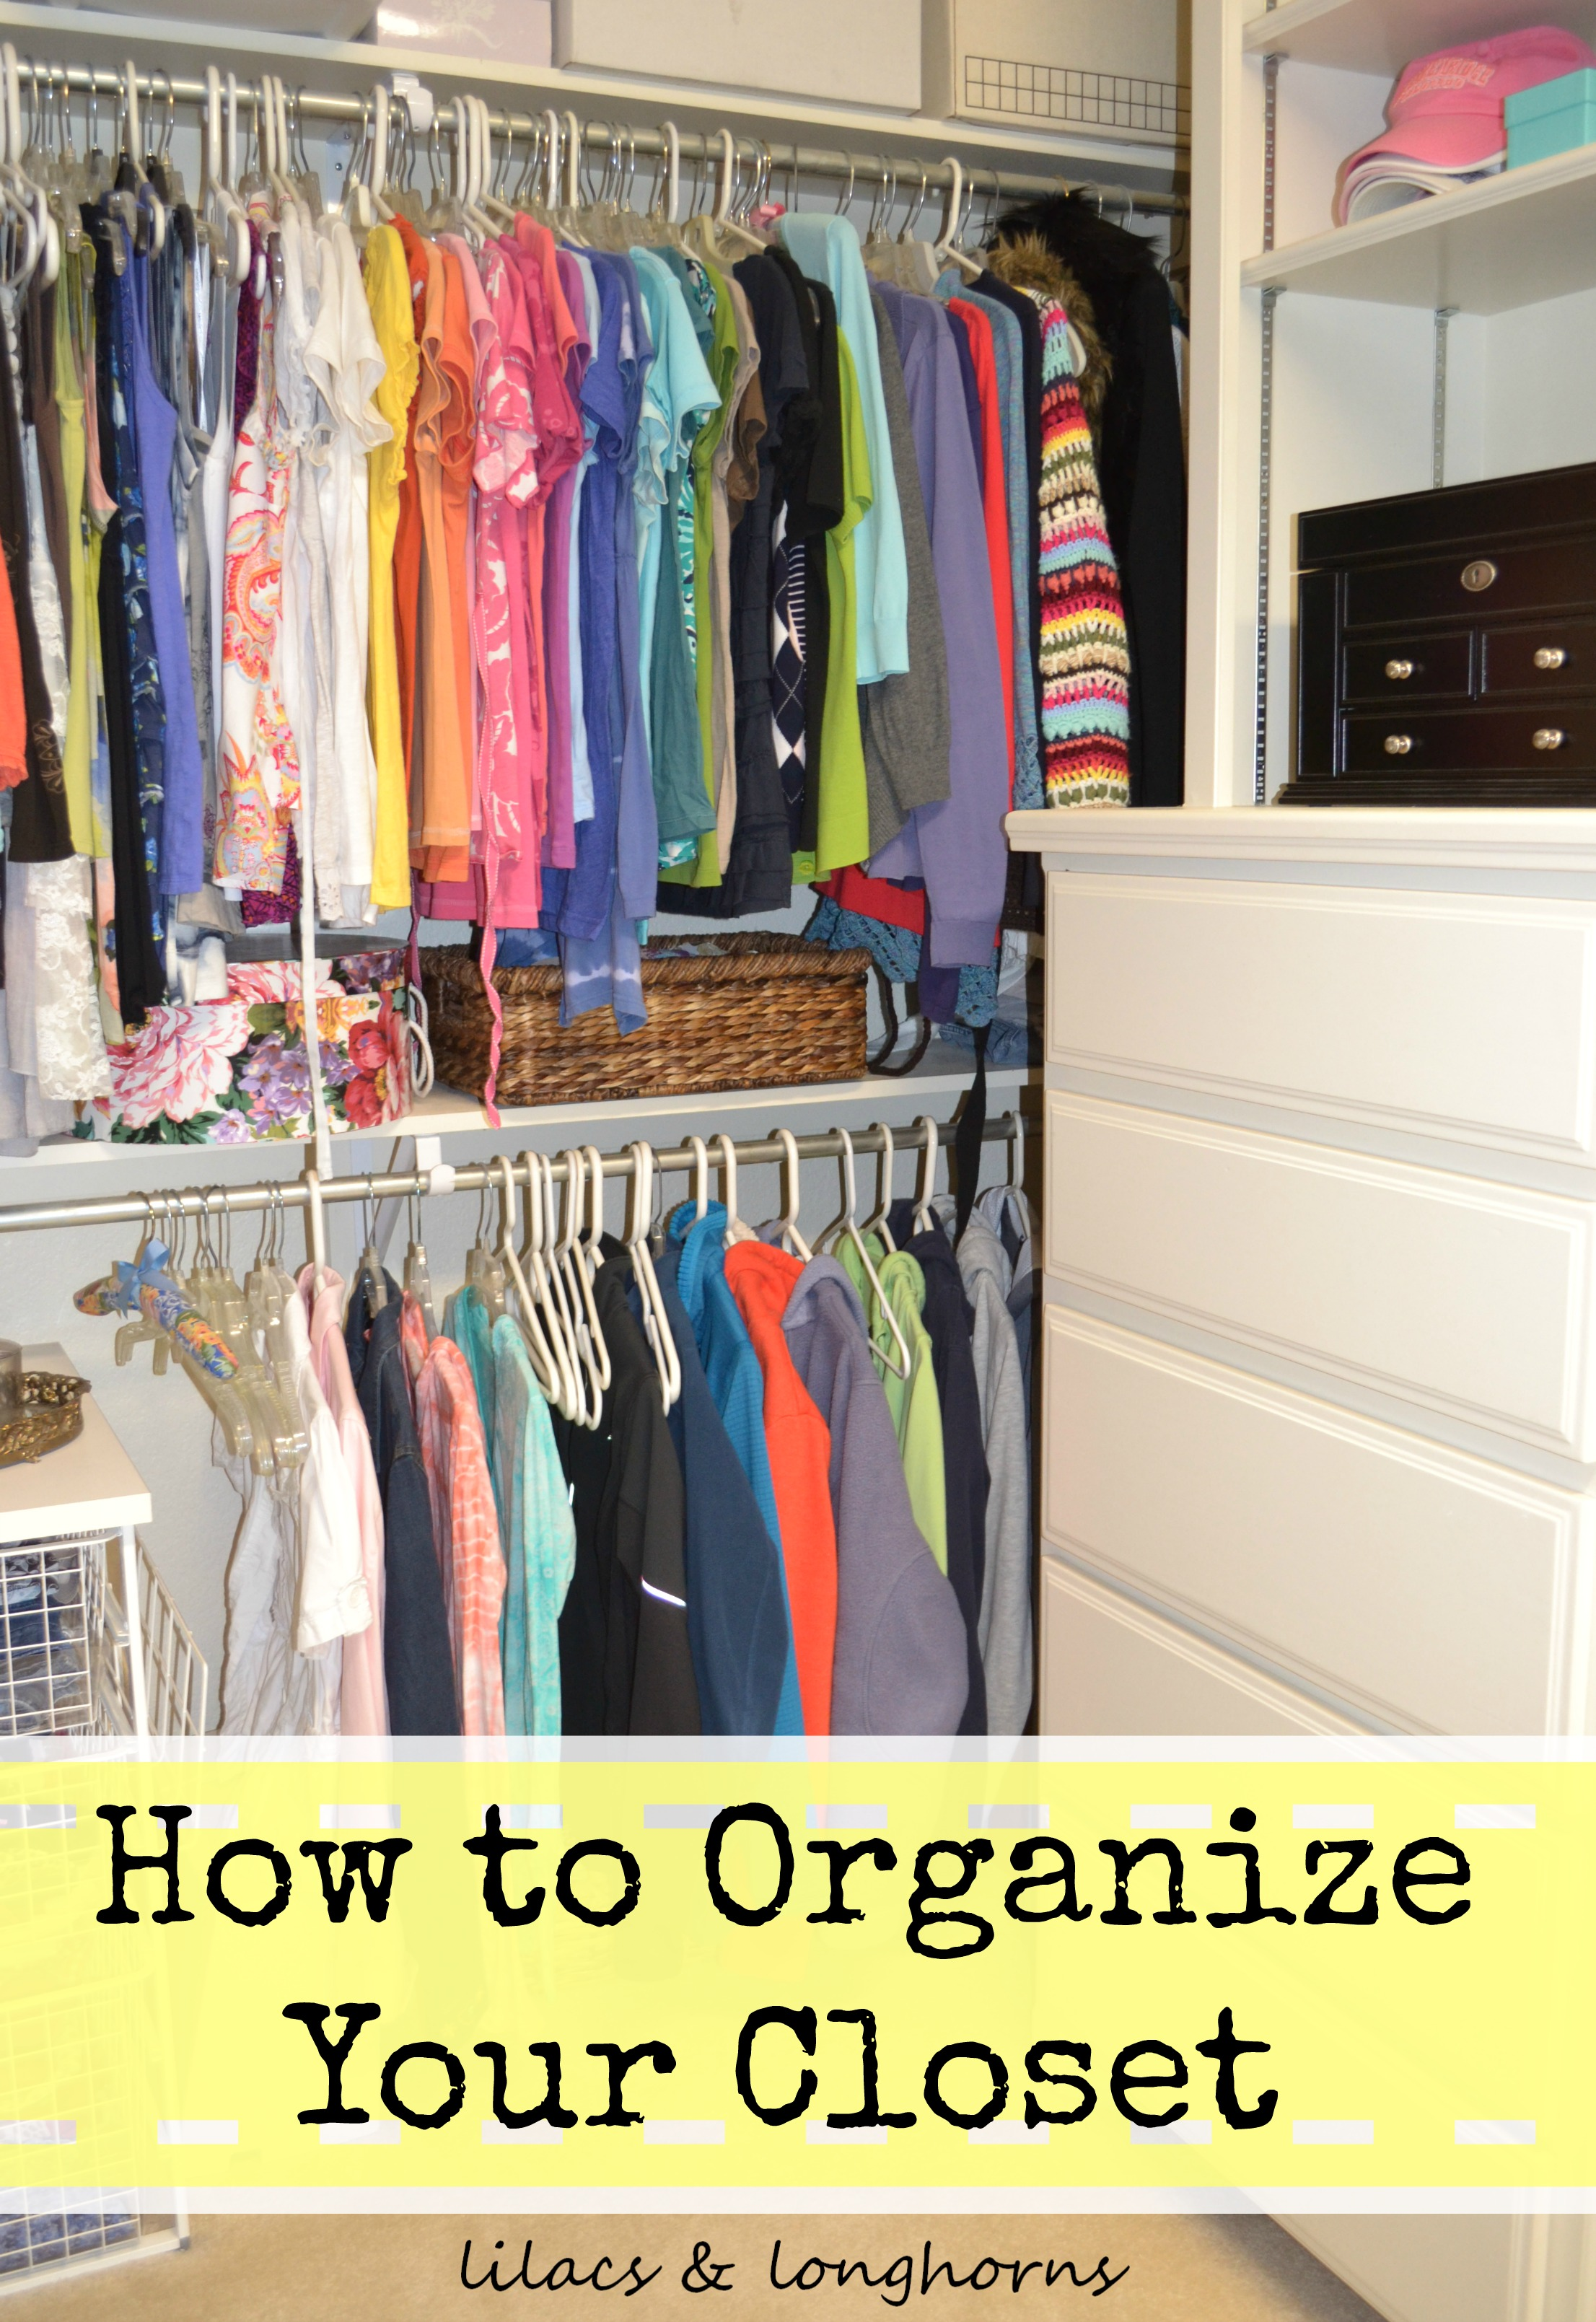 stores white organizer i go cheap can built and custom solutions ideas your size inside storage closet organizers tips the where in buy full organizing builder near me easy design to closets shelving of store shelves